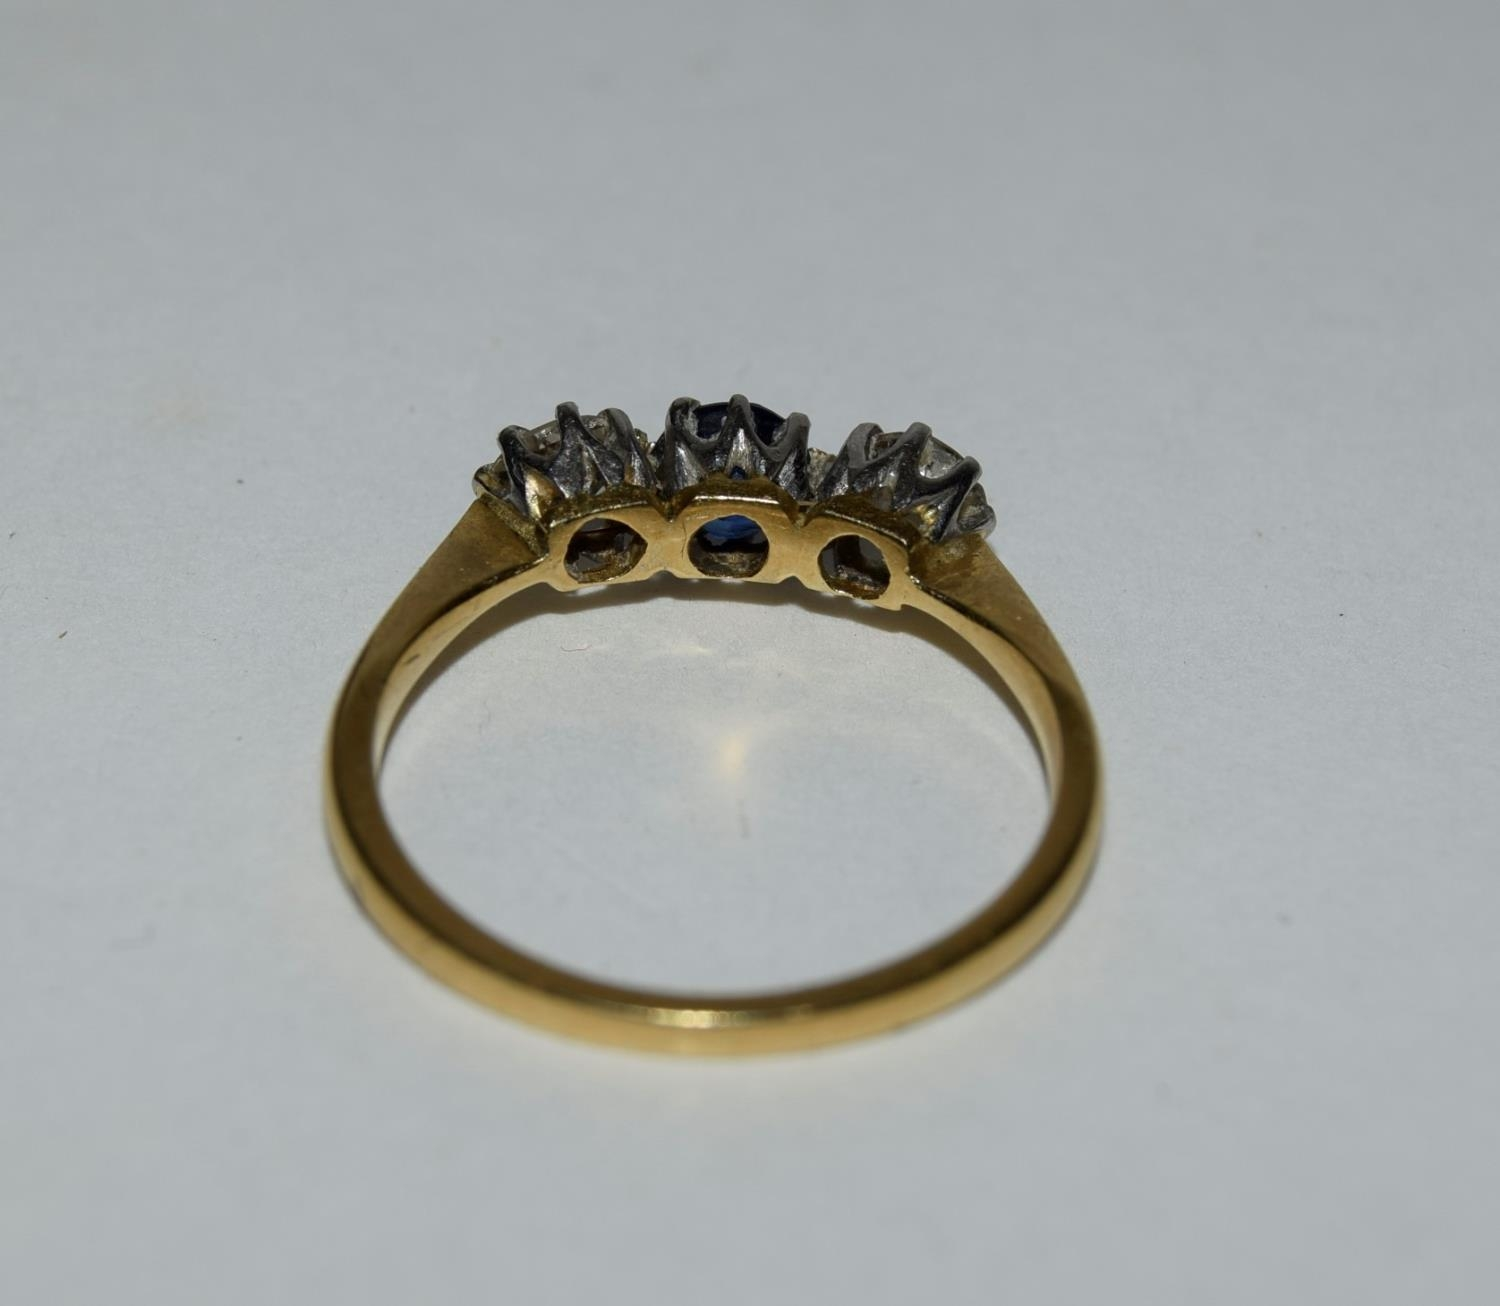 18ct gold and platinum ladies diamond and sapphire 3 stone ring approx 0.5ct diamond size L - Image 3 of 6